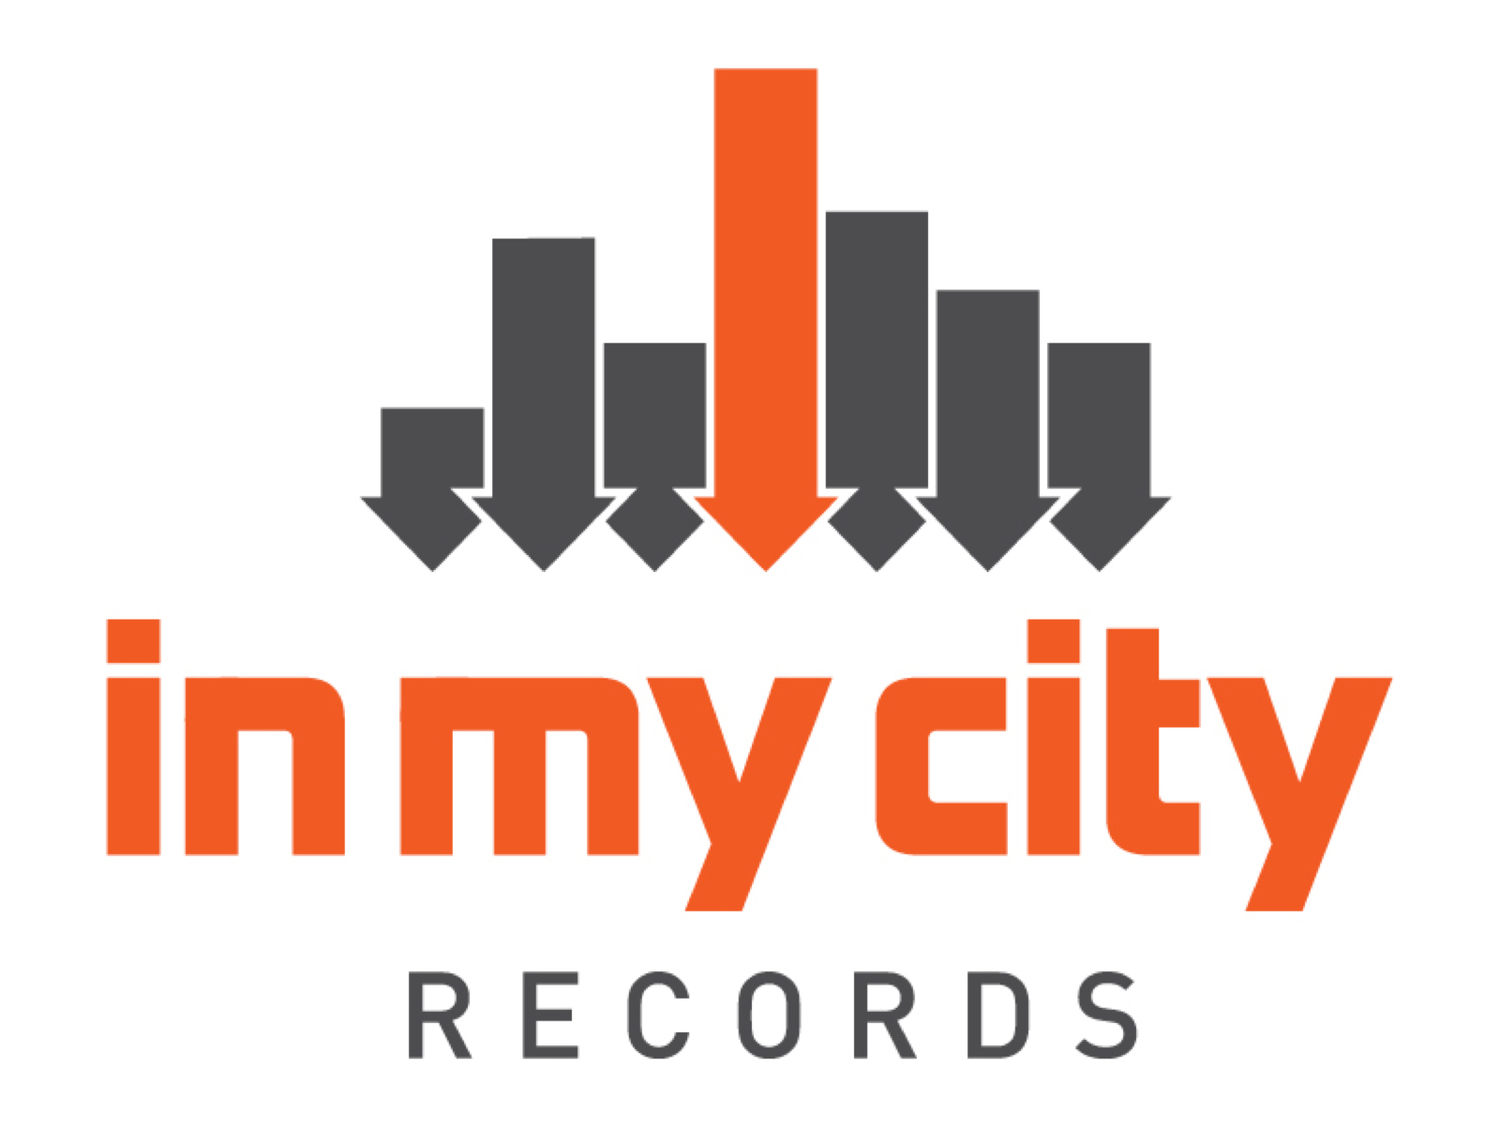 In My City Records